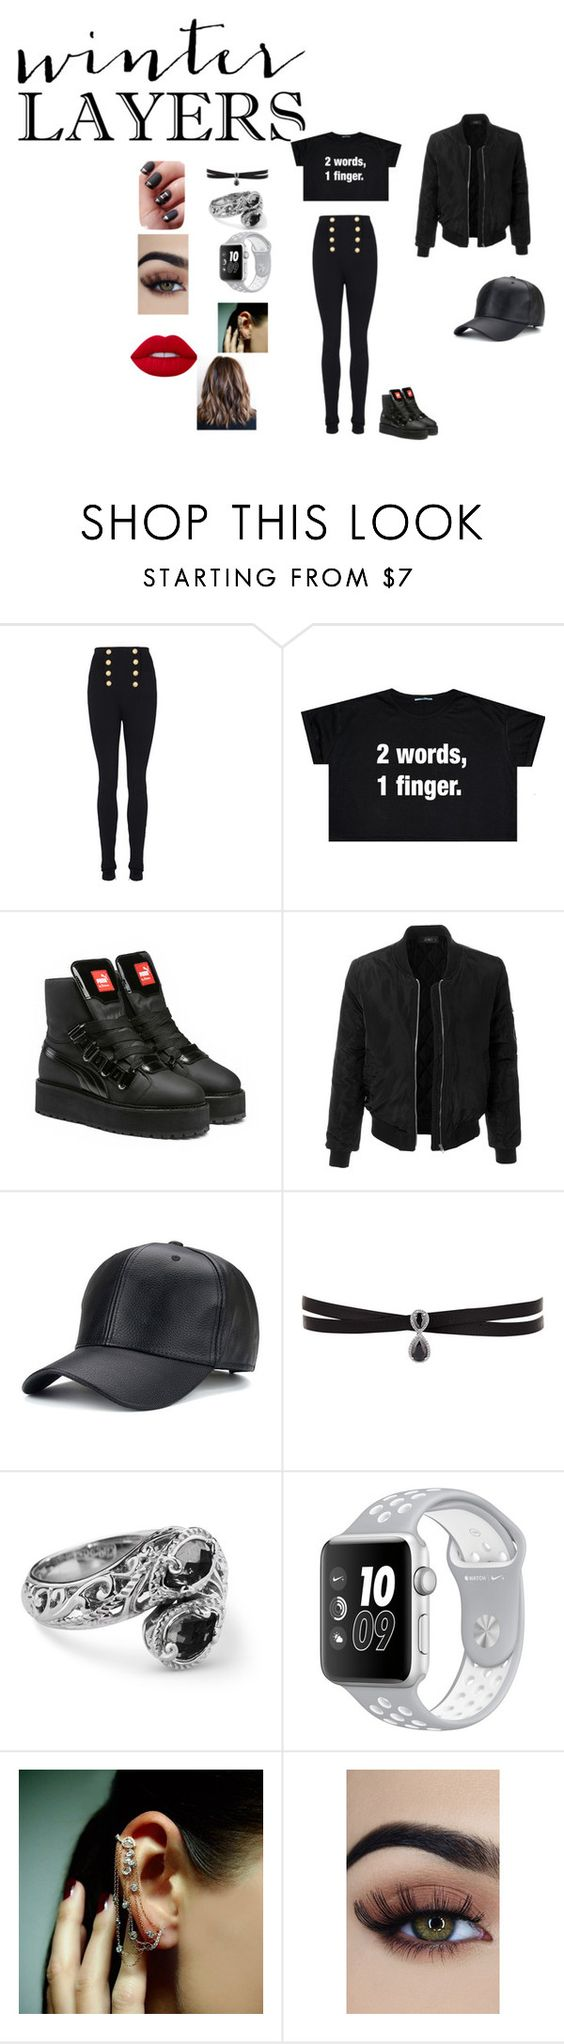 """""""f**ck"""" by cassandrajolley ❤ liked on Polyvore featuring Balmain, Puma, LE3NO, Fallon, Mike Saatji and Lime Crime"""